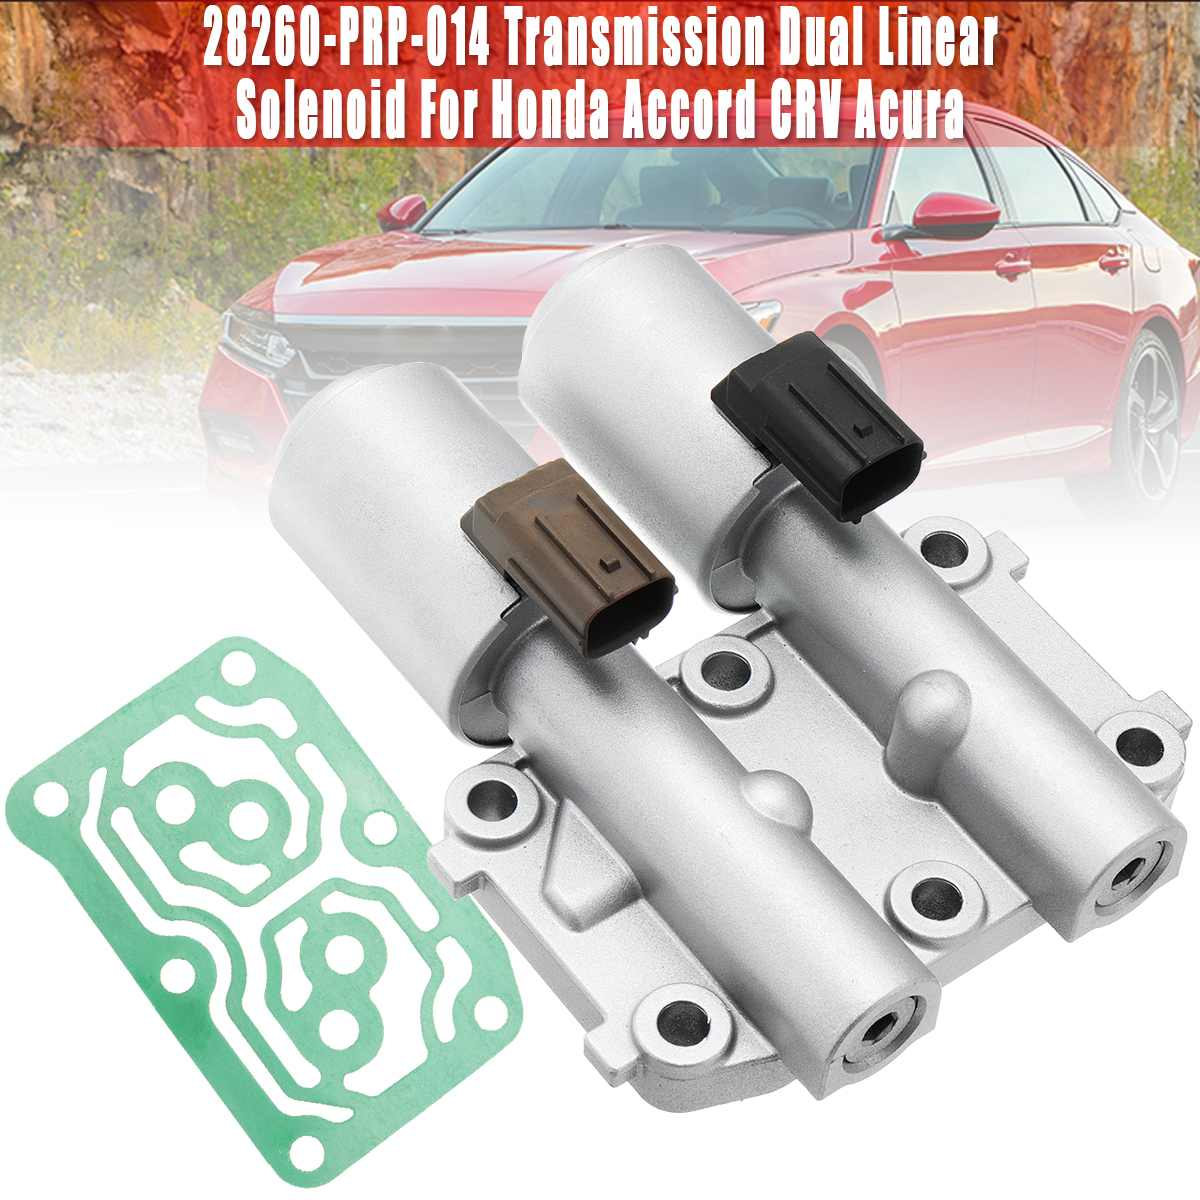 Transmission Dual Linear Solenoid Fit 28260-PRP-014 For Honda Accord/CRV/Acura Auto Replacement Automatic Transmission & Parts(China)